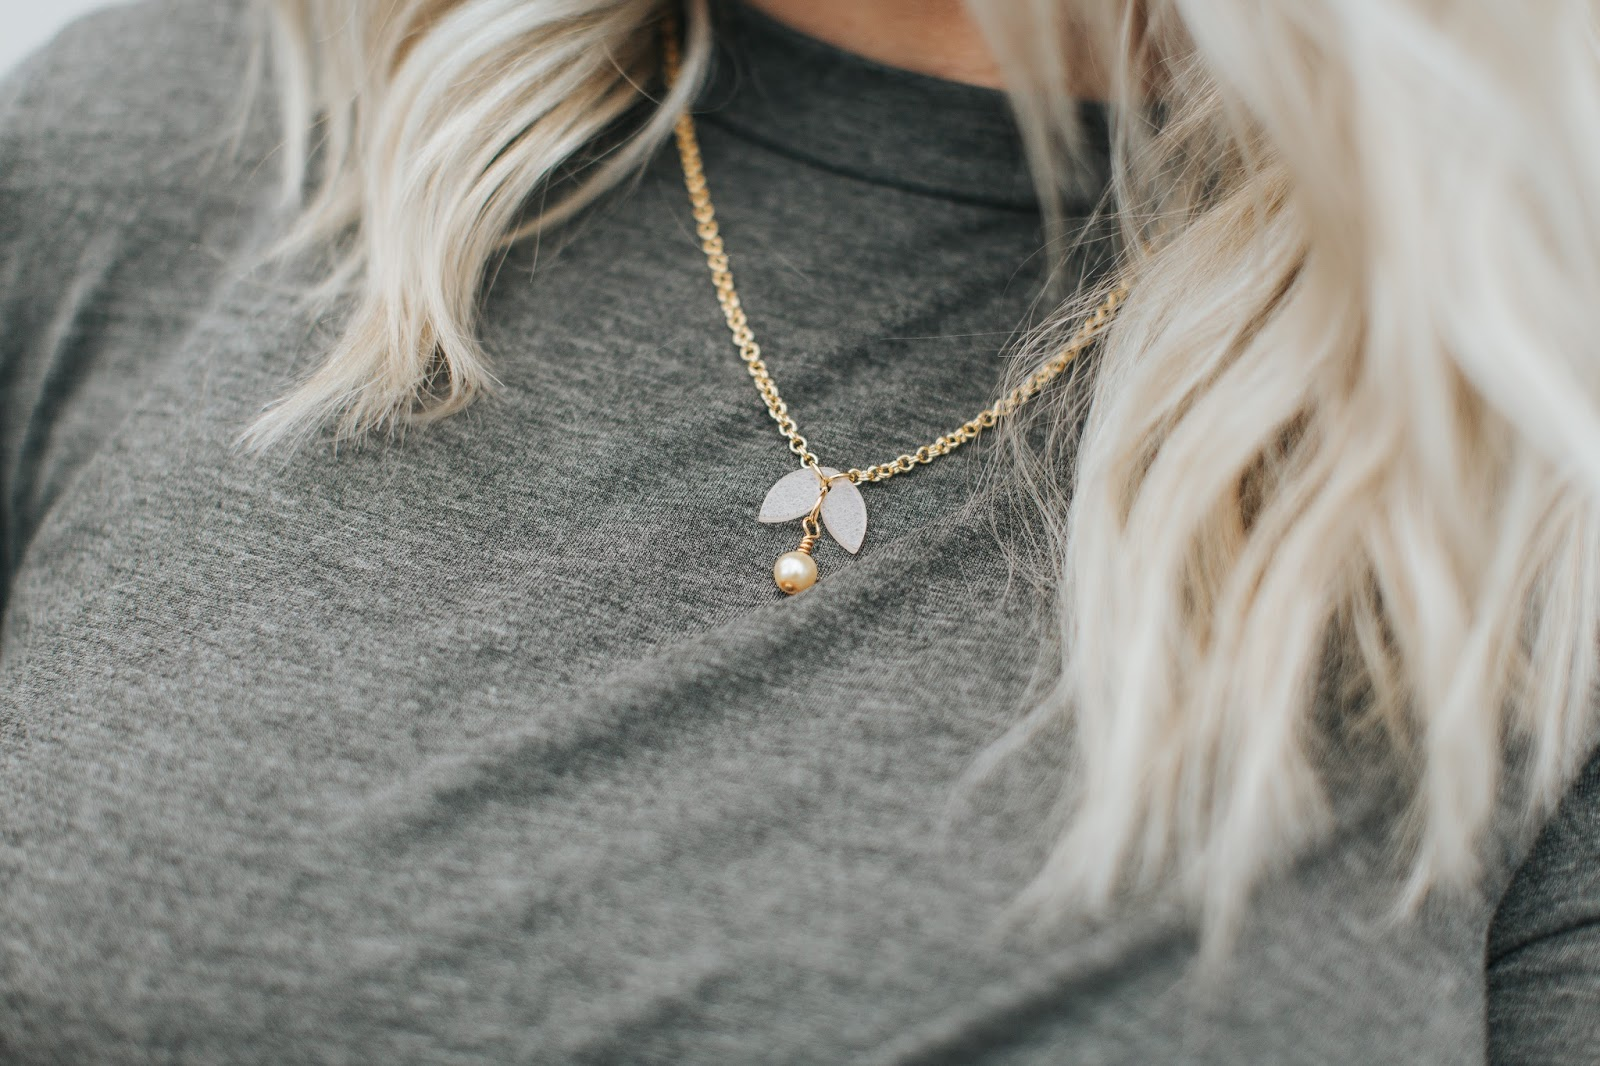 Color by Amber, Utah Fashion Blogger, Necklace